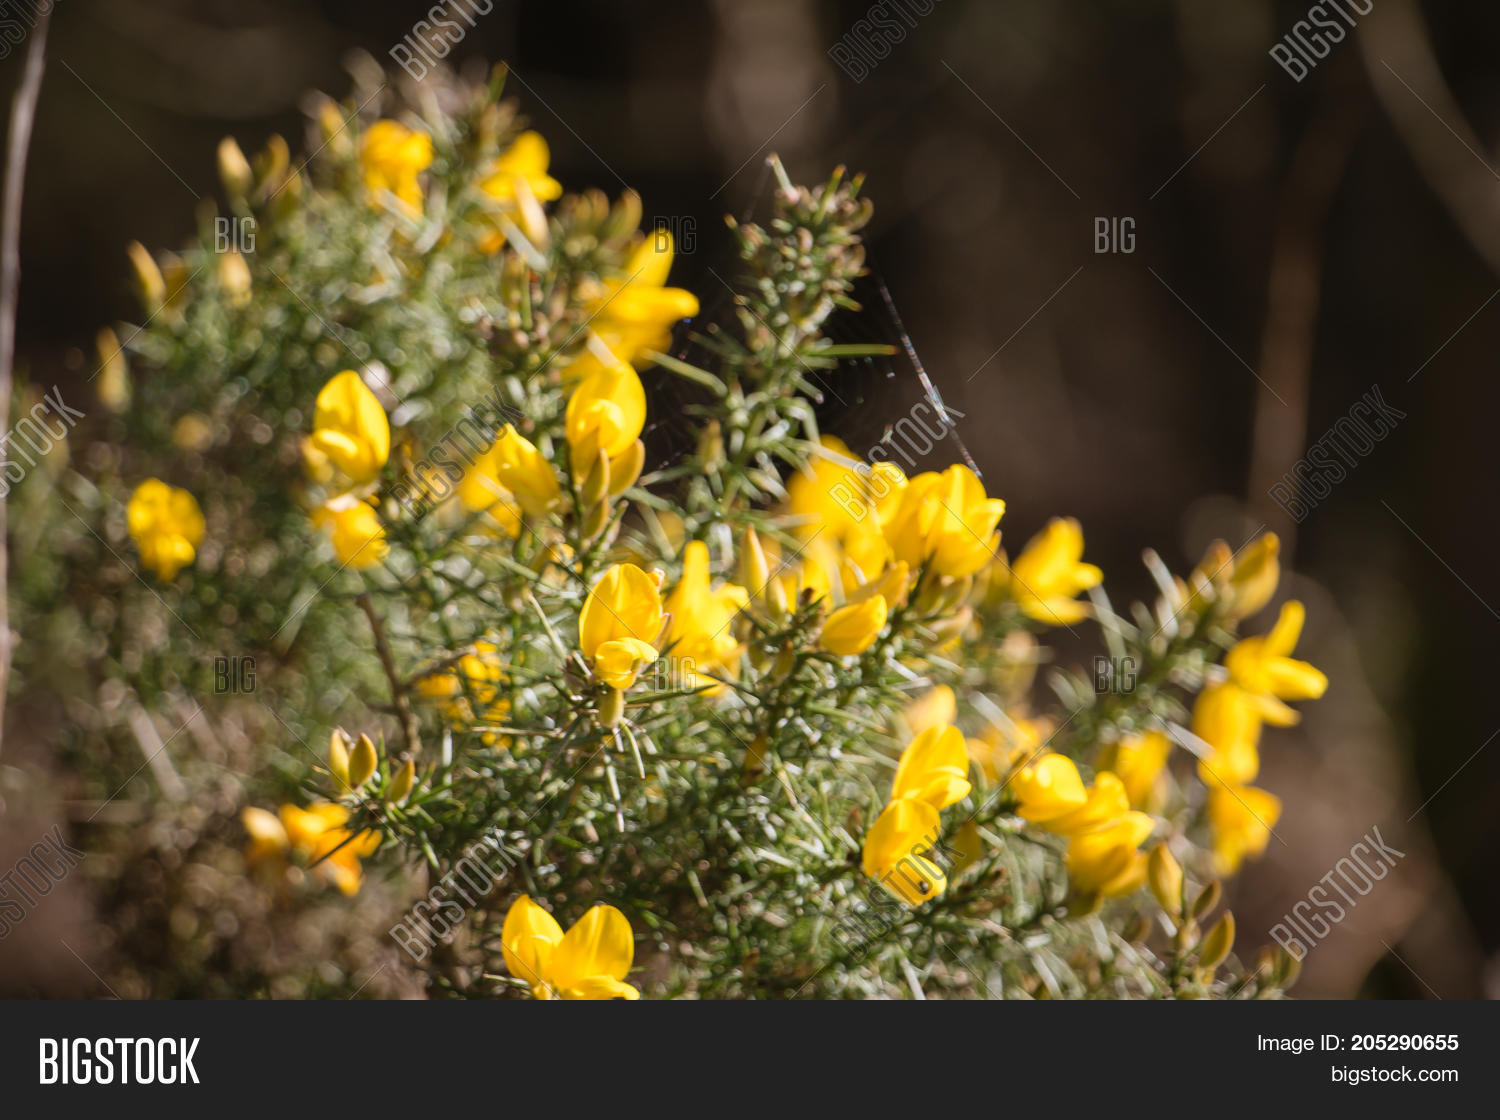 Flowering common gorse image photo free trial bigstock flowering common gorse ulex europaeus a spiky thorn covered plant with bright yellow mightylinksfo